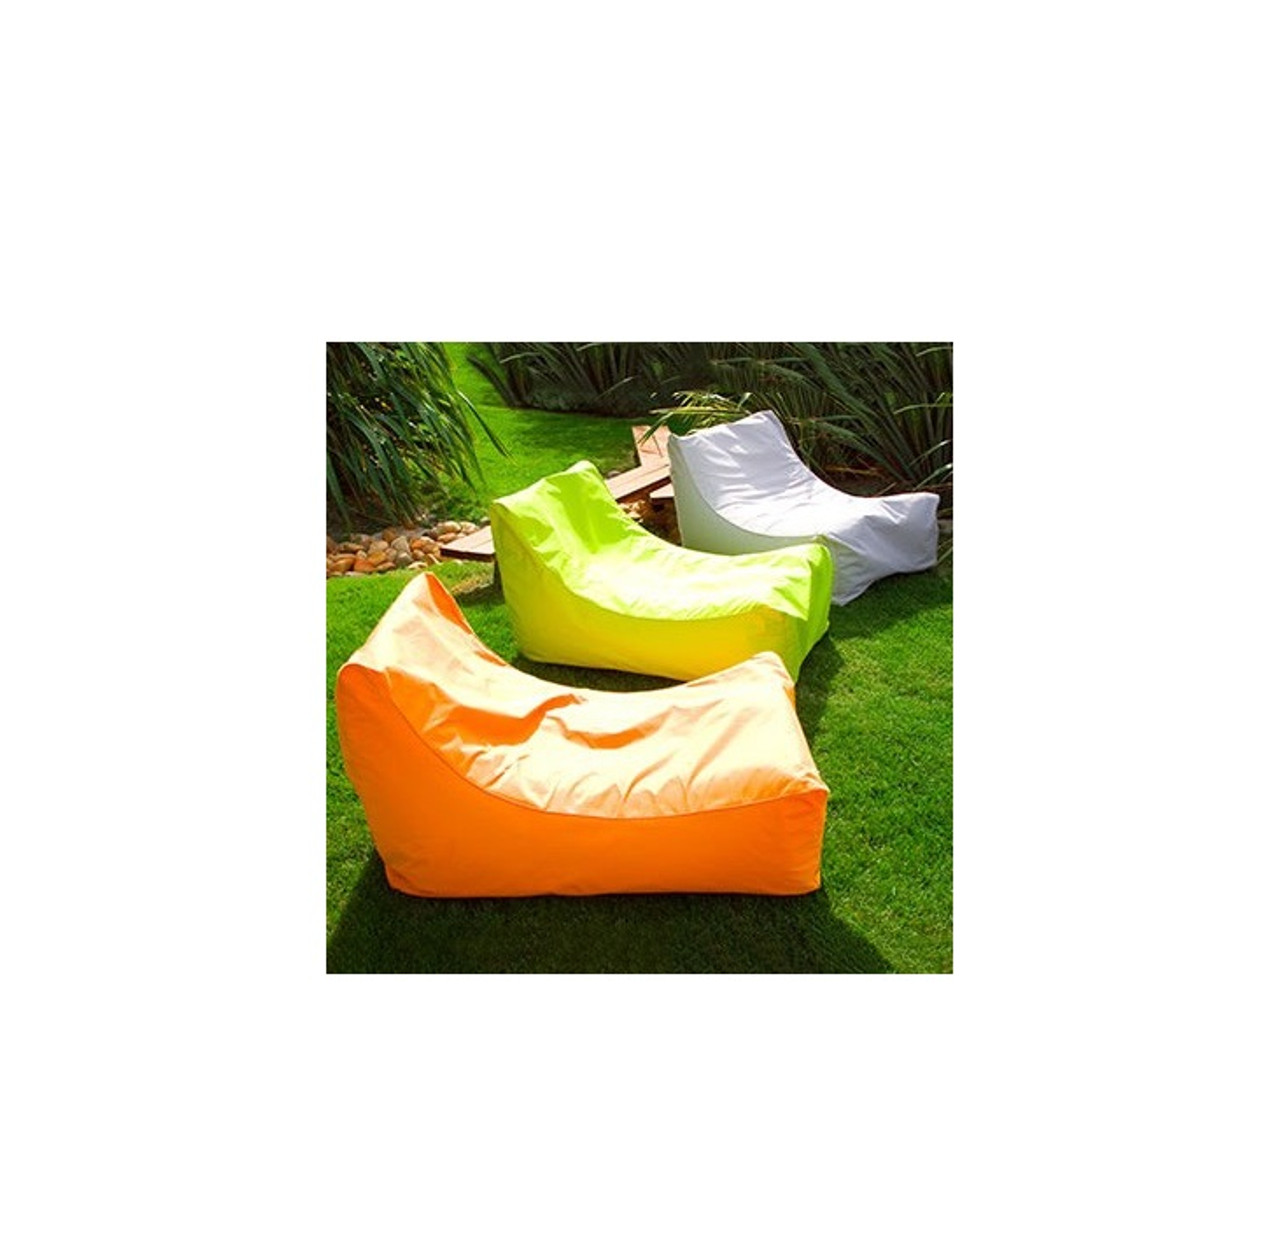 43 Vibrant Orange Sunsoft Inflatable Chaise Swimming Pool Float for Water or Land